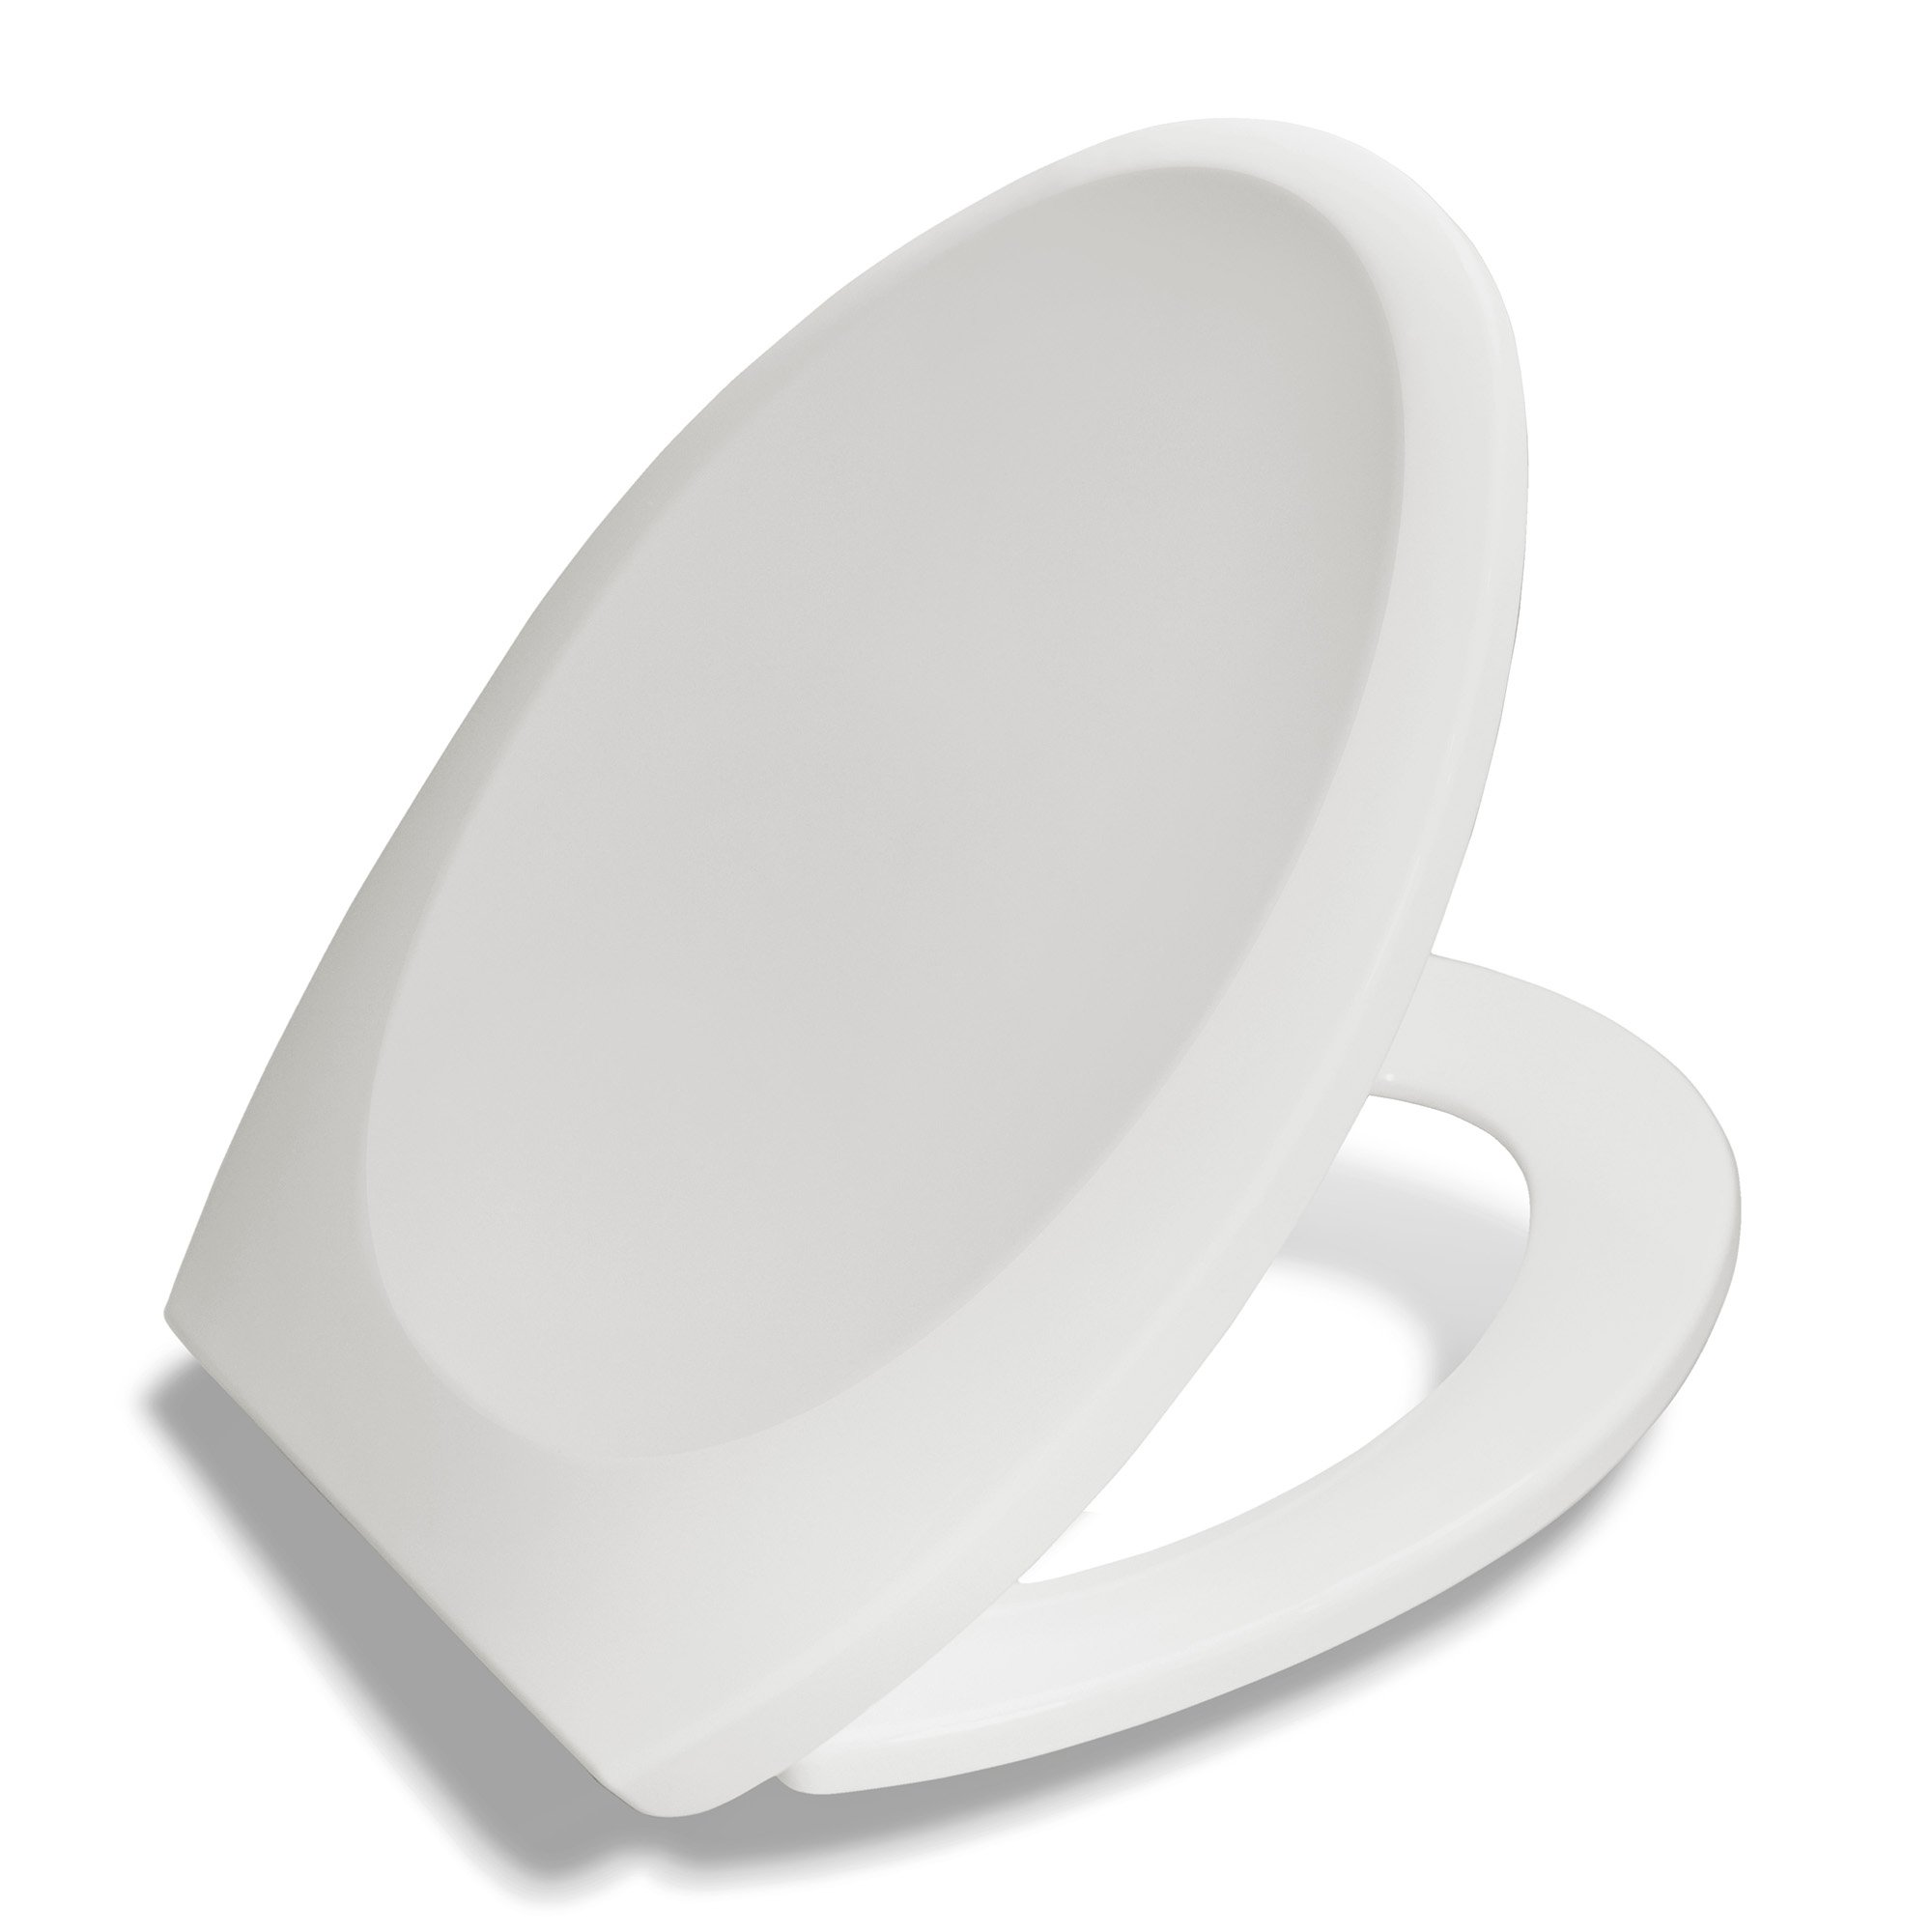 Bath Royale Premium Elongated Toilet Seat with Cover, White, Slow-Close, Quick-Release for Easy Cleaning. Fits All Elongated (Oval) Toilets by Bath Royale